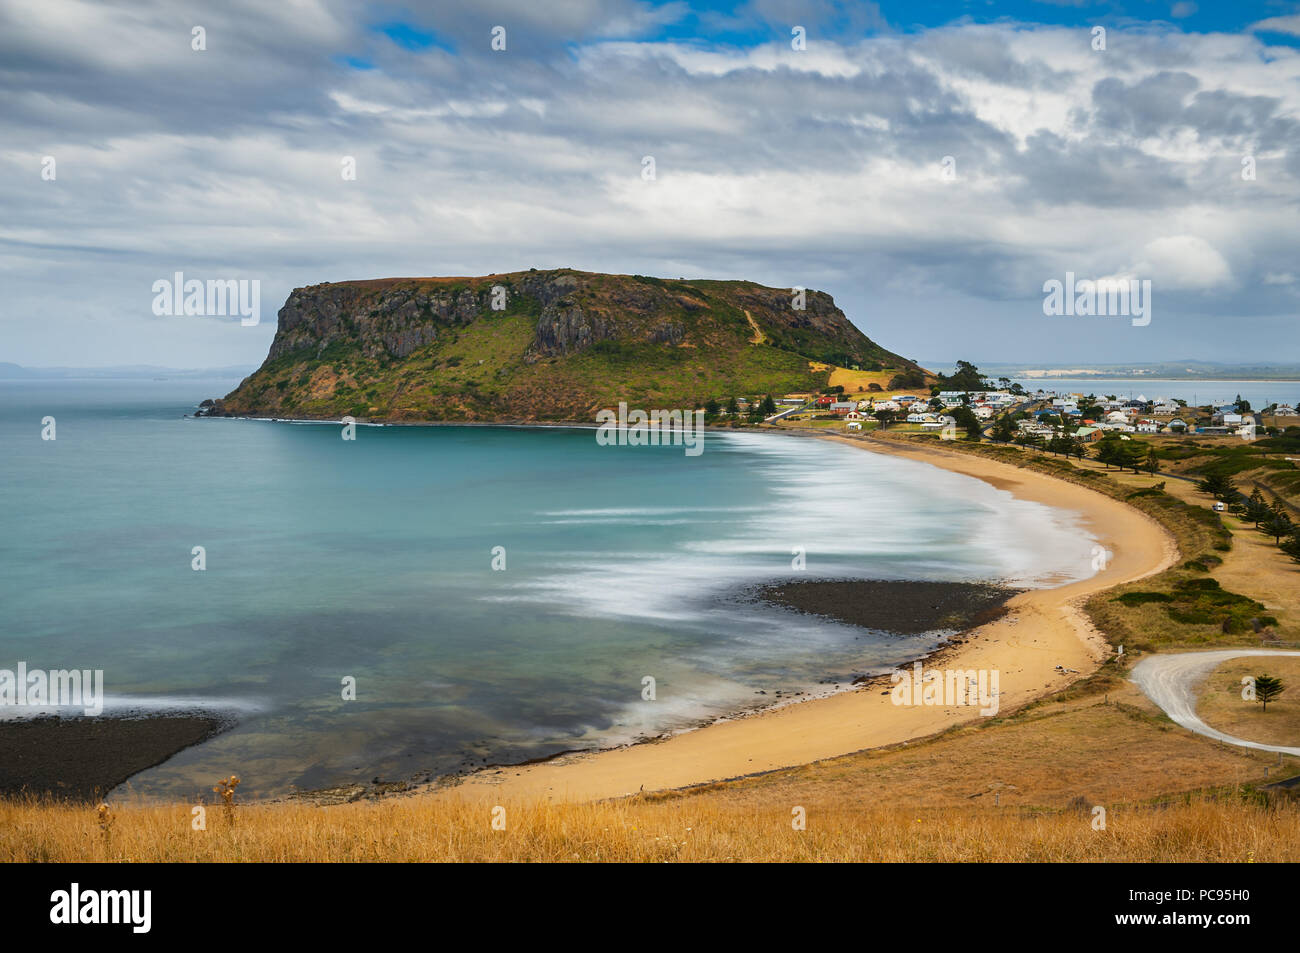 The Nut in Stanley at the north coast of Tasmania. - Stock Image